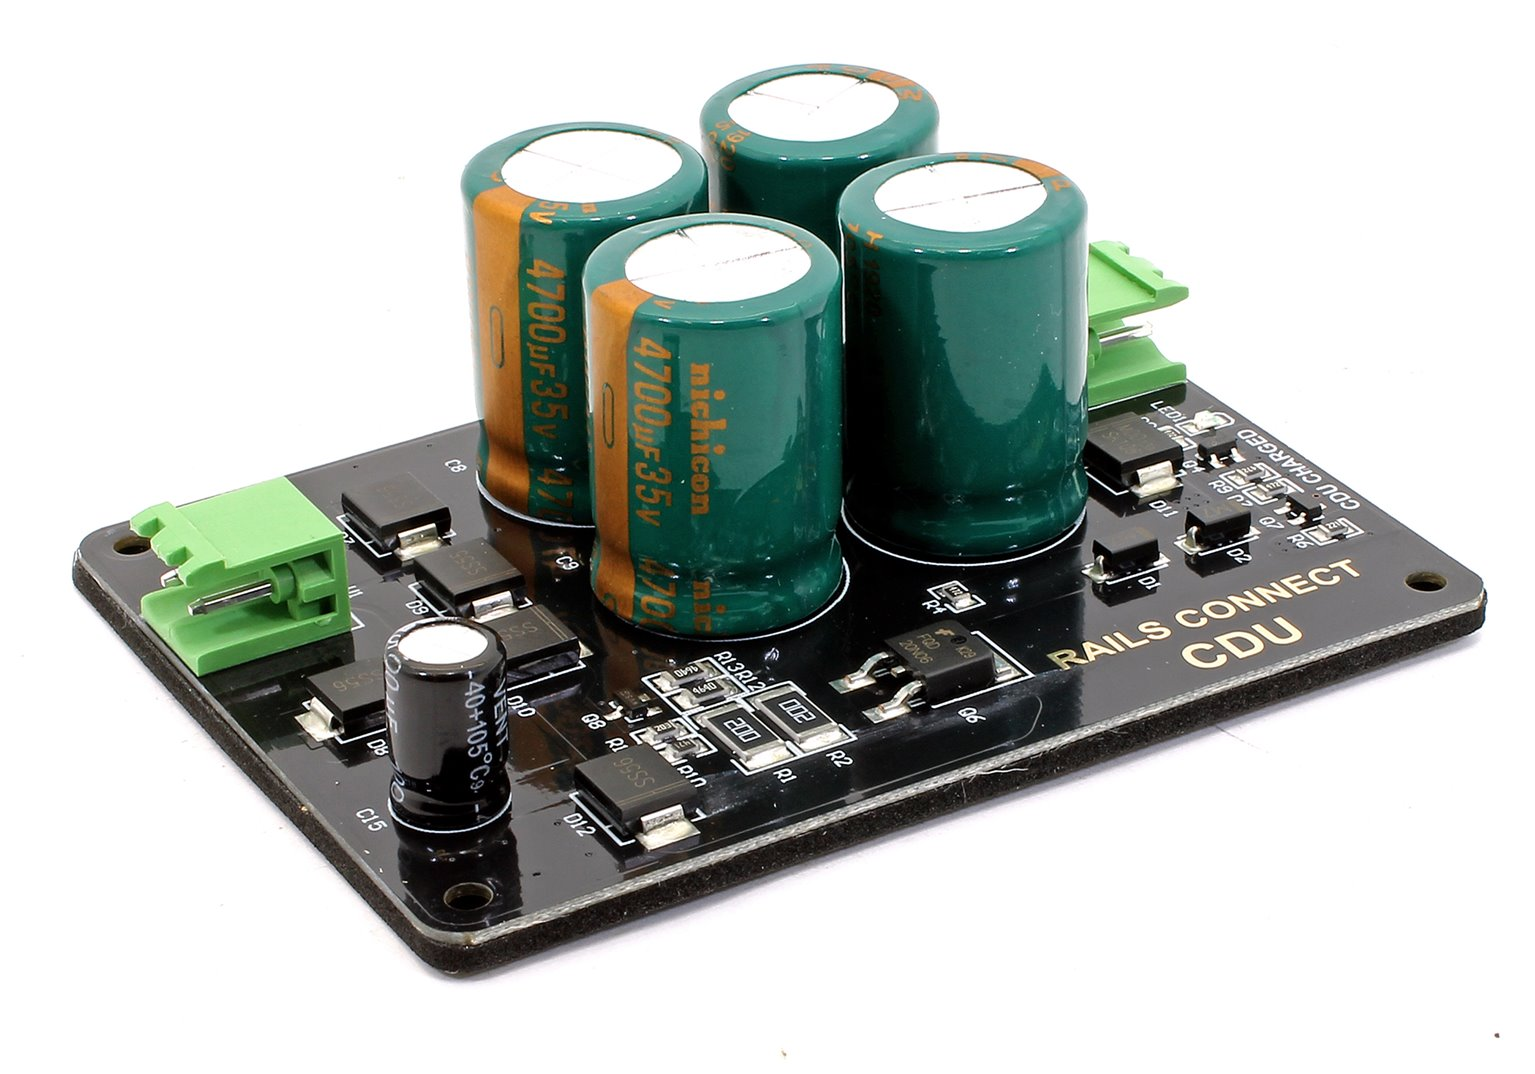 Rails Connect High Power CDU Capacitor Discharge Unit